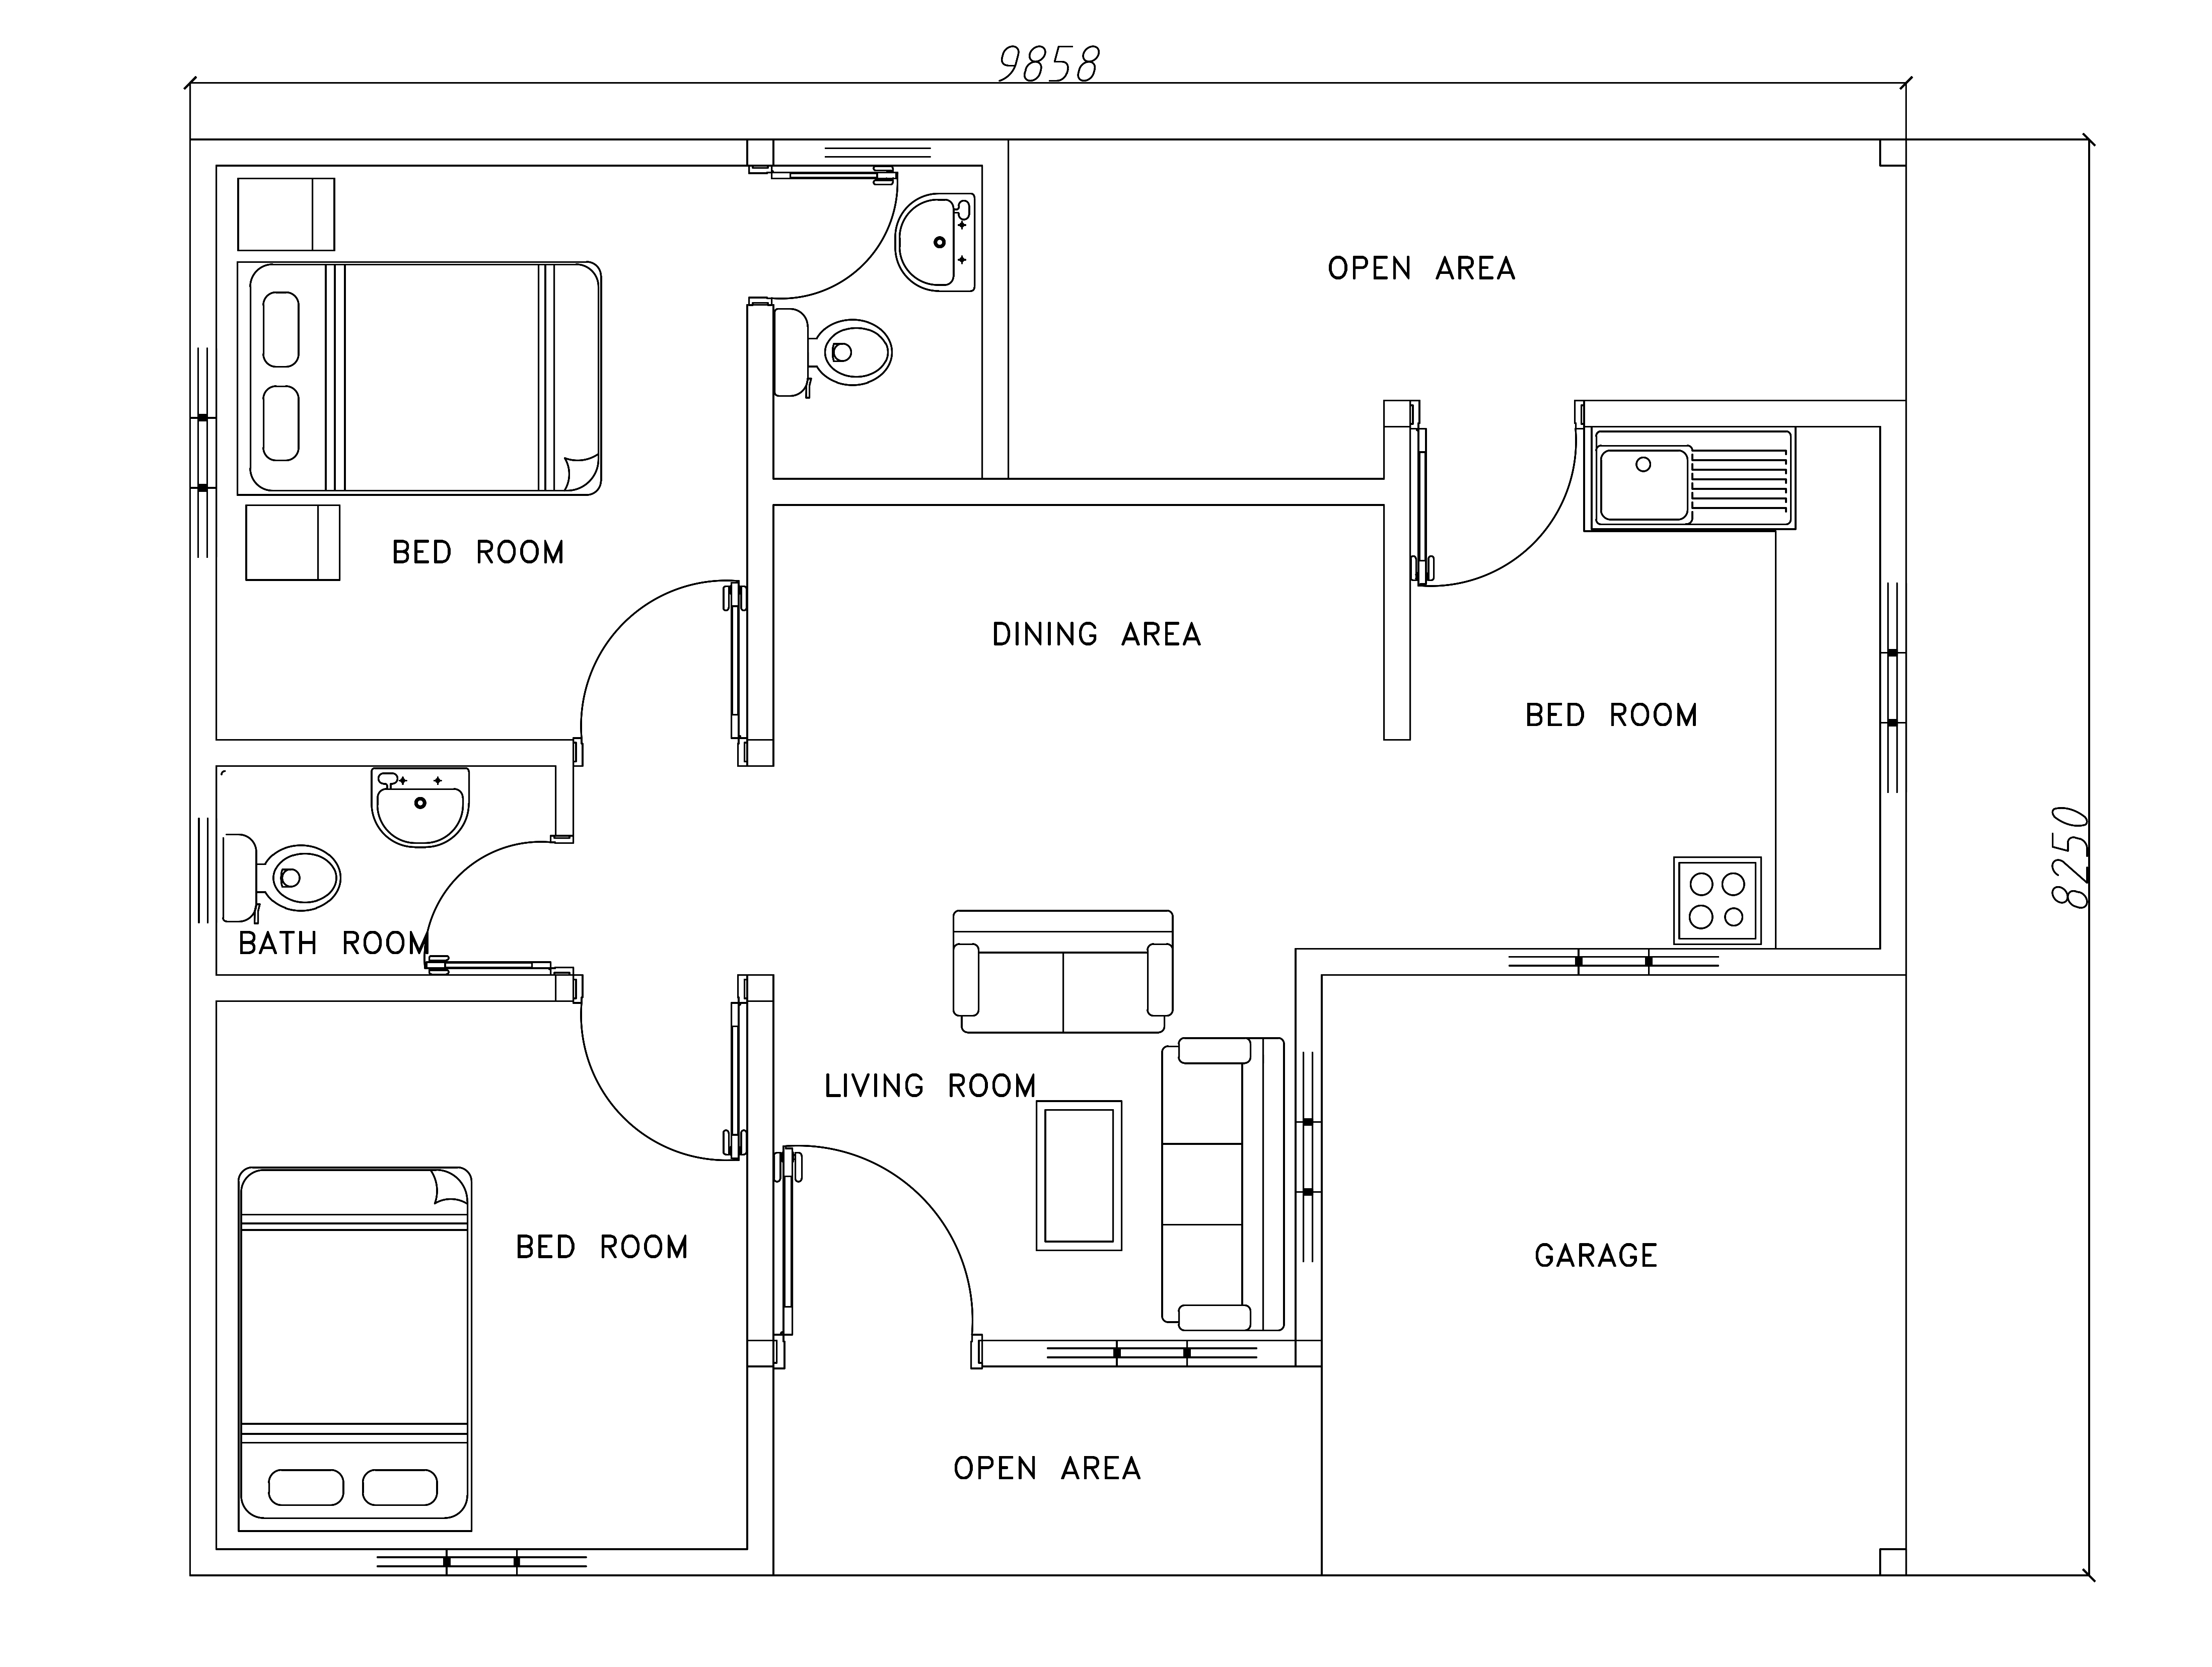 Cad room design free home design Room design software free download